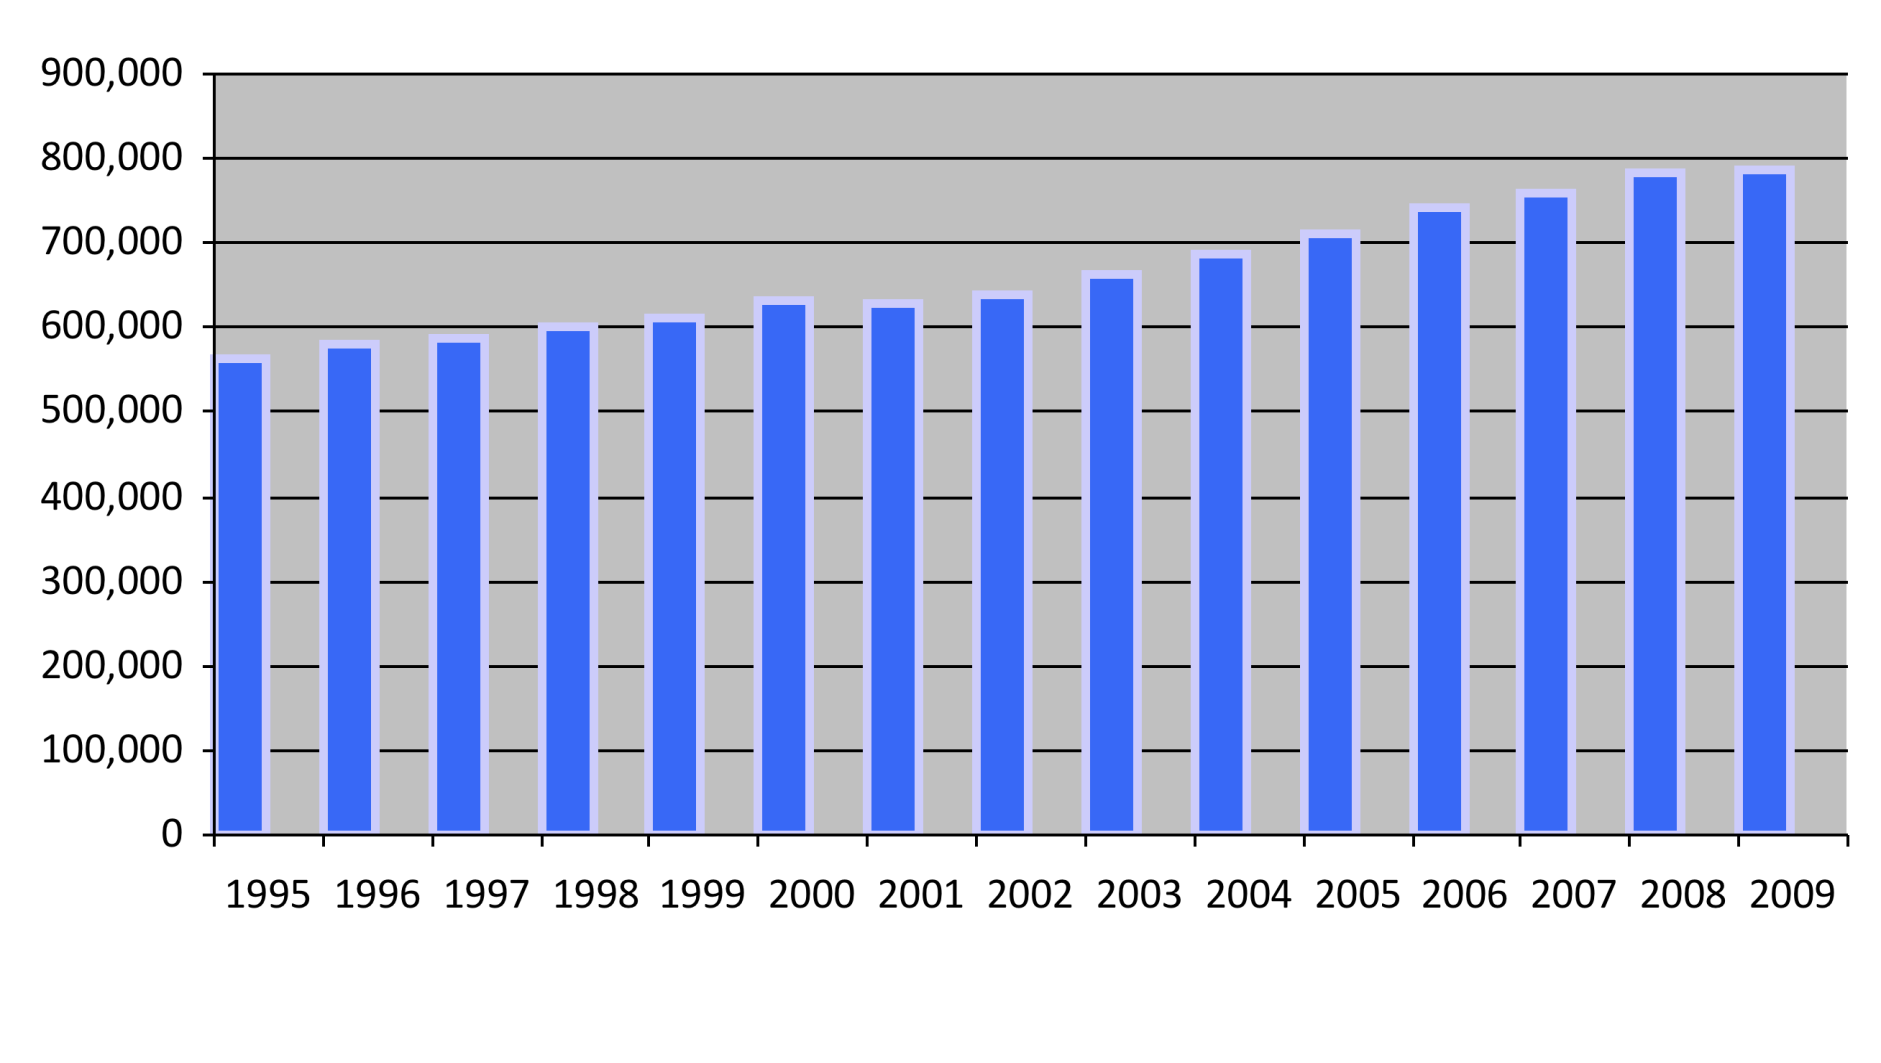 Science research papers per year, 1995-2009: